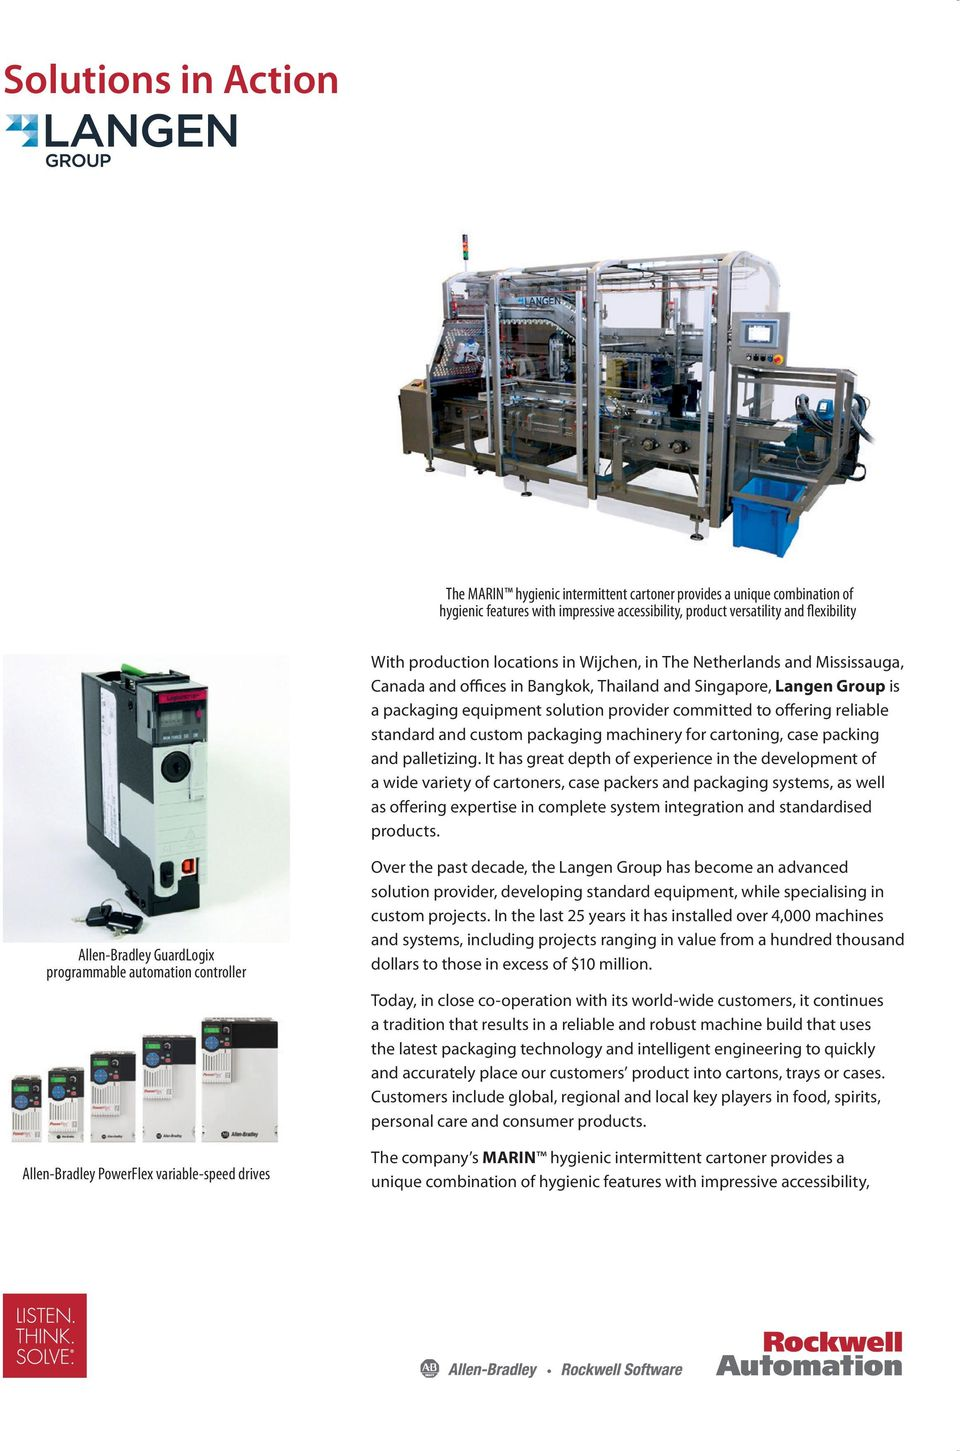 standard and custom packaging machinery for cartoning, case packing and palletizing.